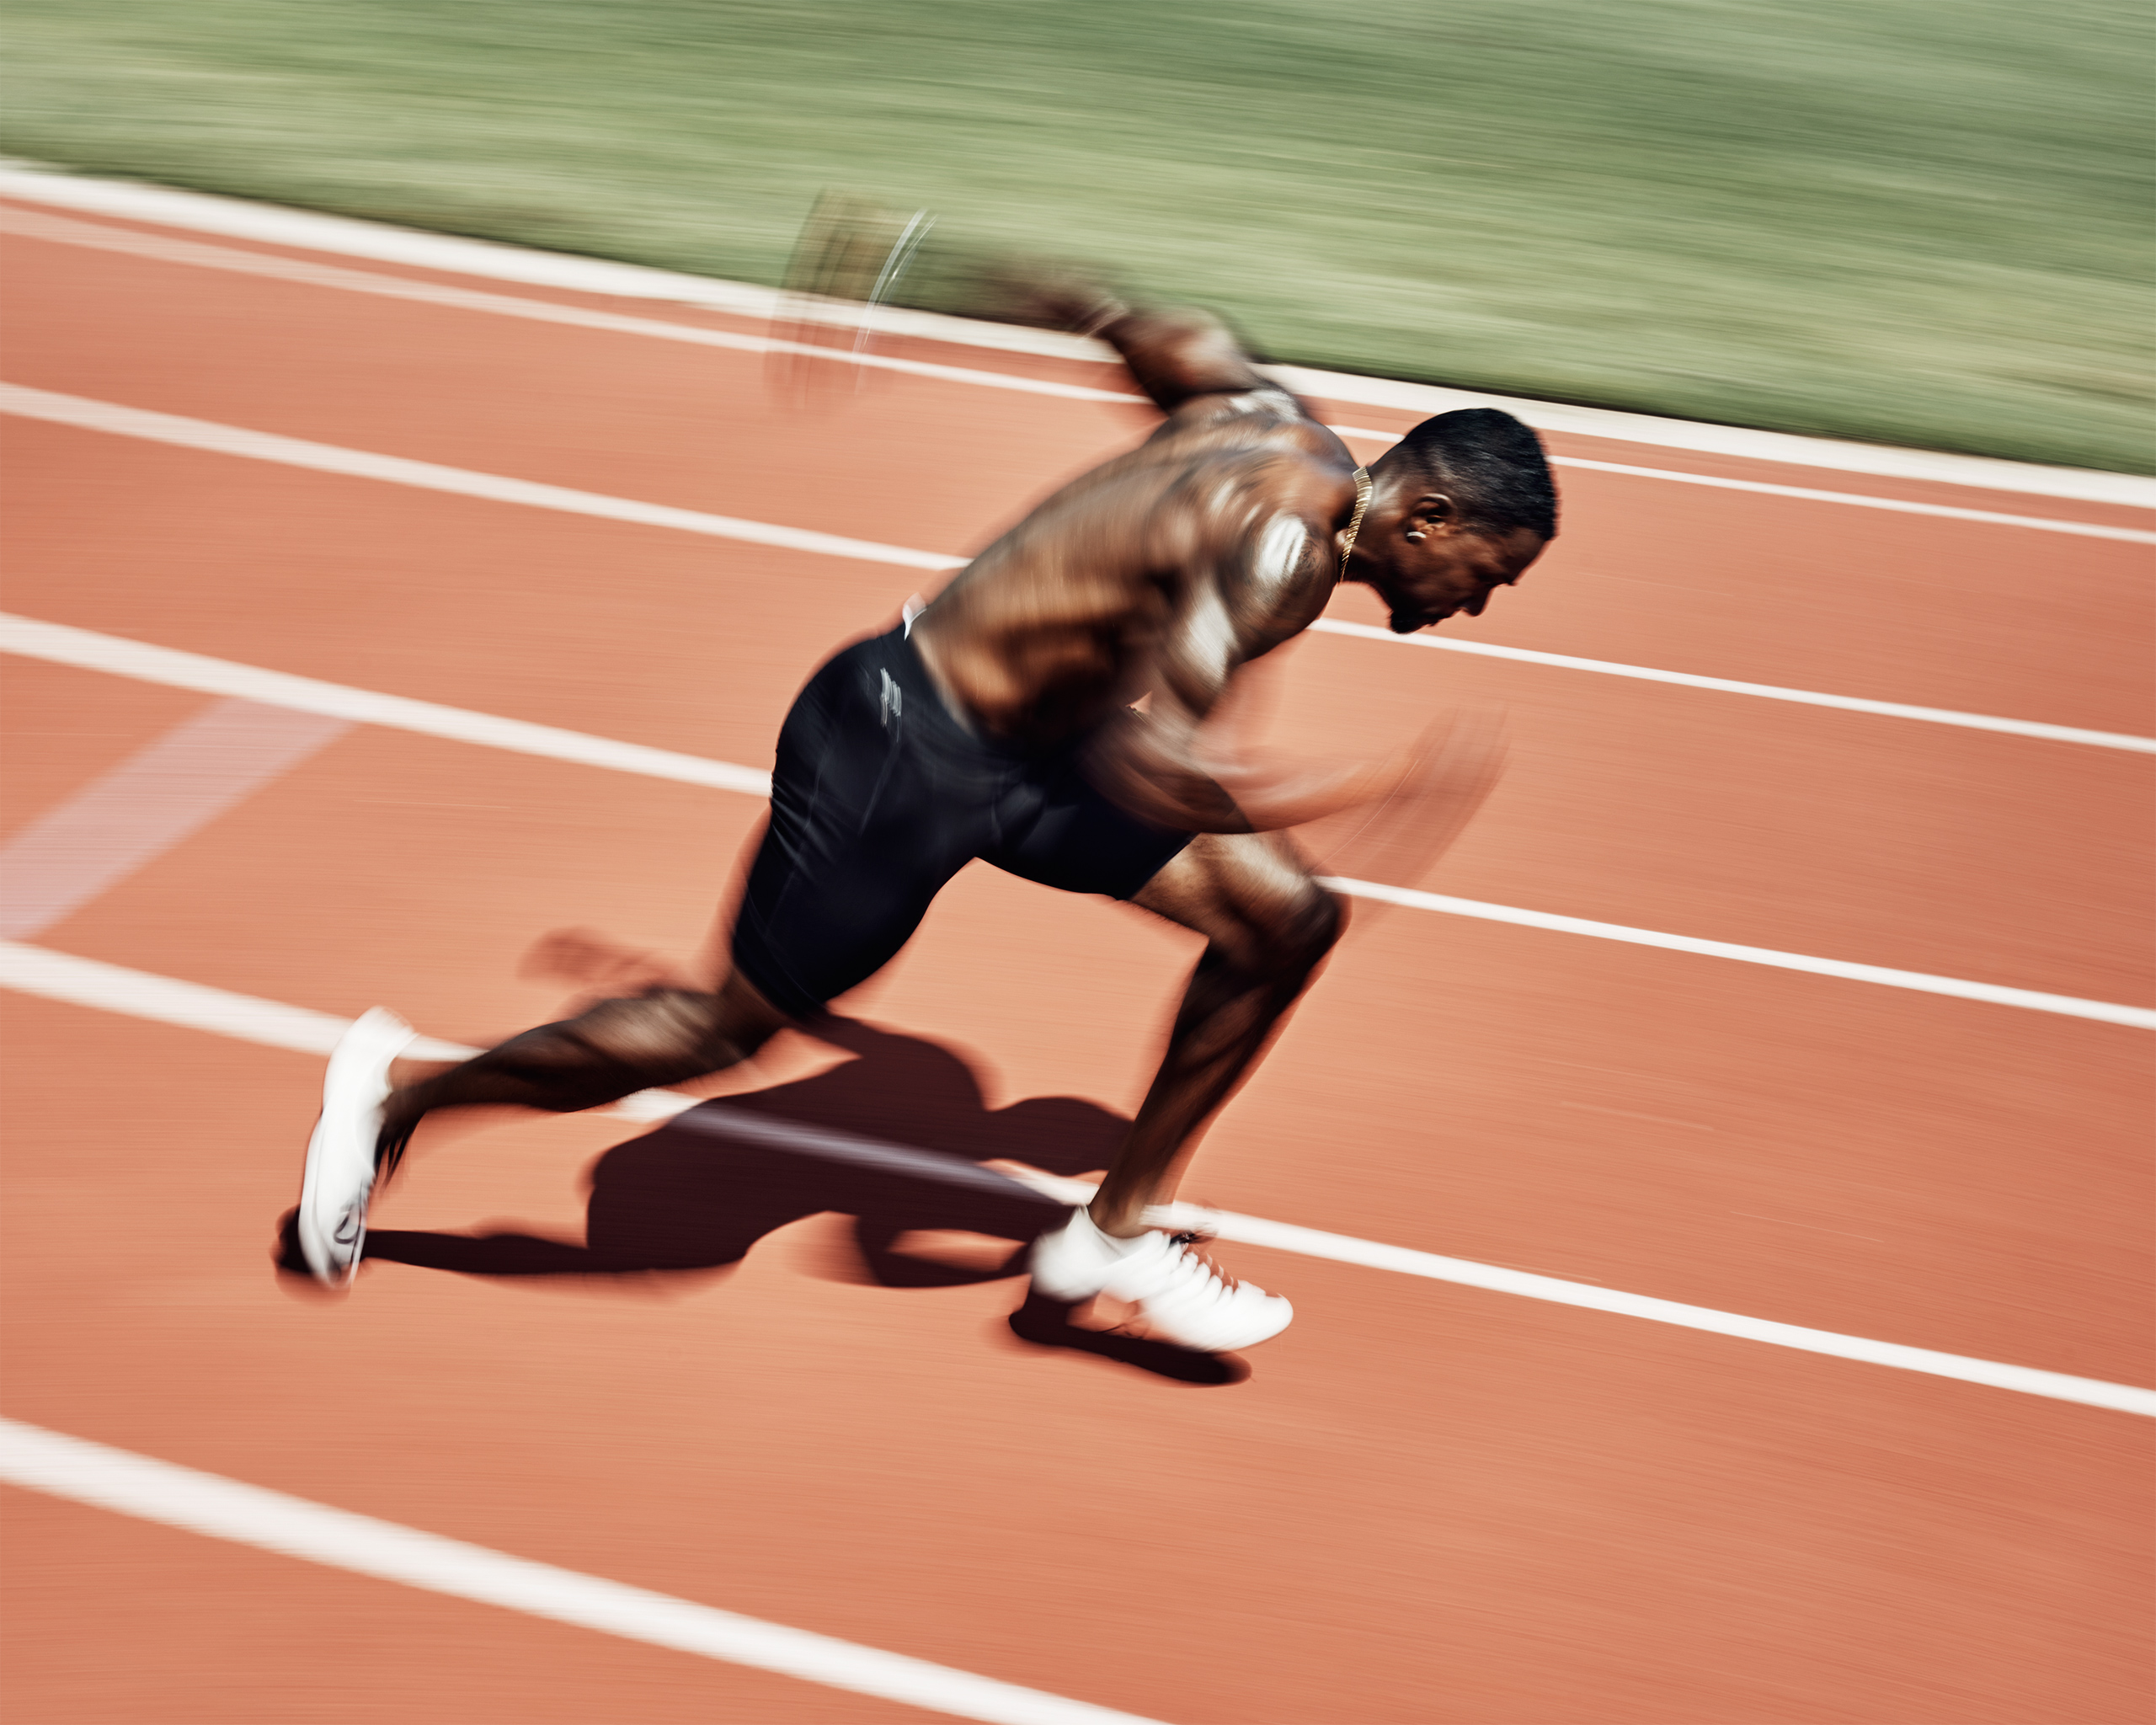 Gold Medalist sprinter Justin Gatlin practices at Montverde Academy in Montverde, FL on Friday, July 22, 2016. Gatlin races Usain Bolt in the 100 meter on August 14.